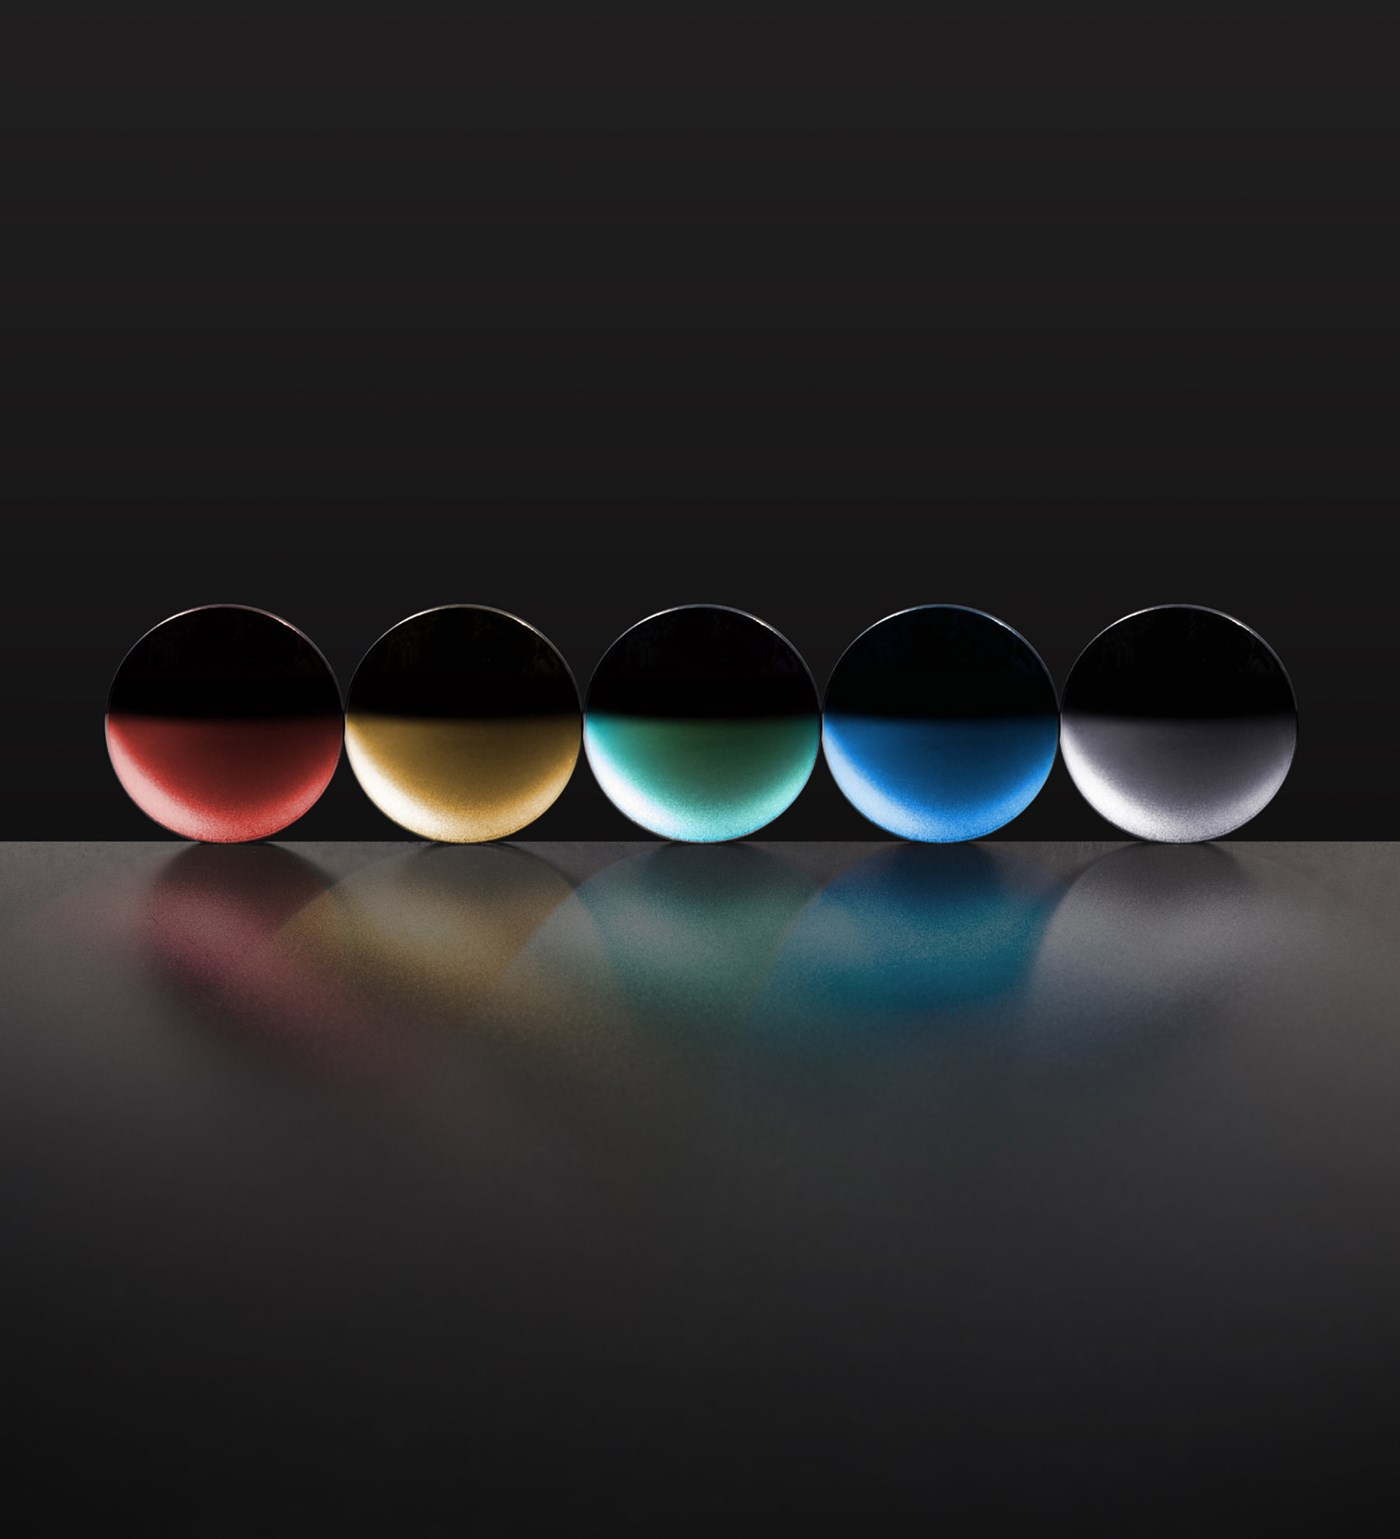 Five different lens treatments of different colours